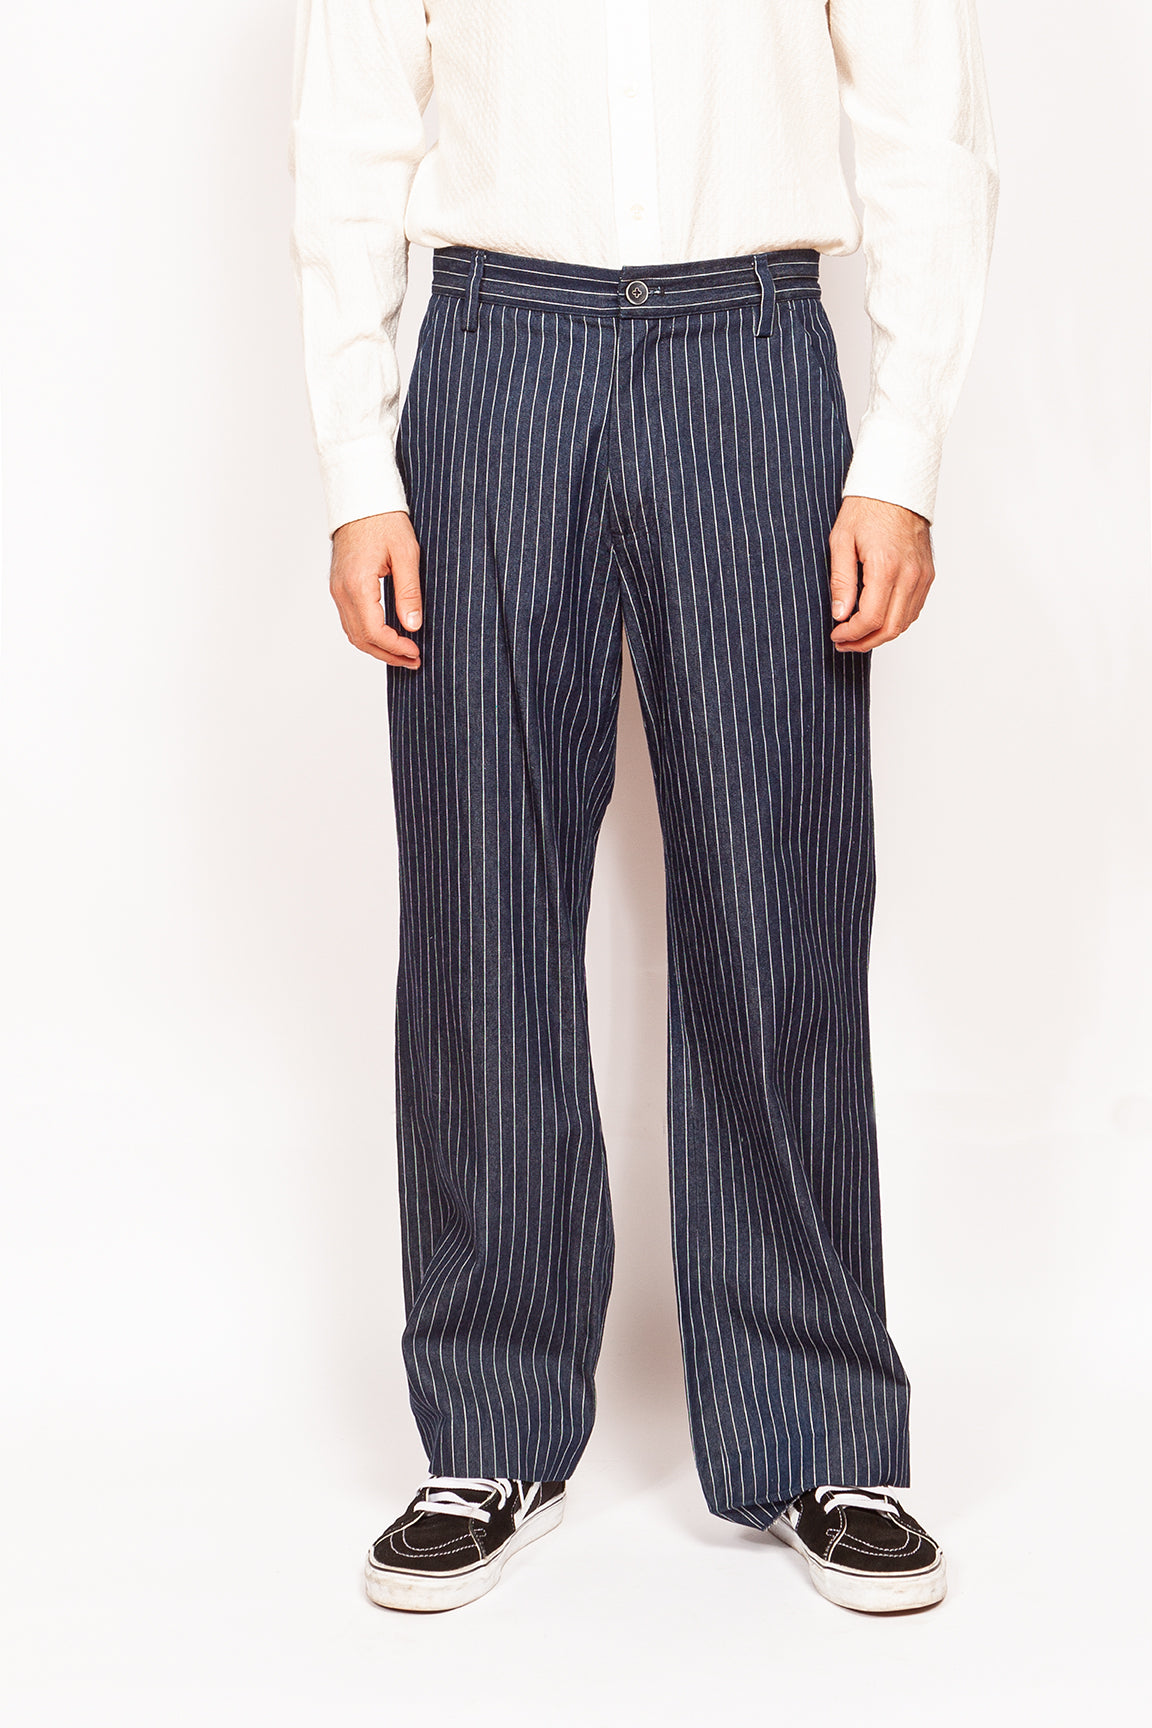 Bogart Trousers - Wide Leg Denim